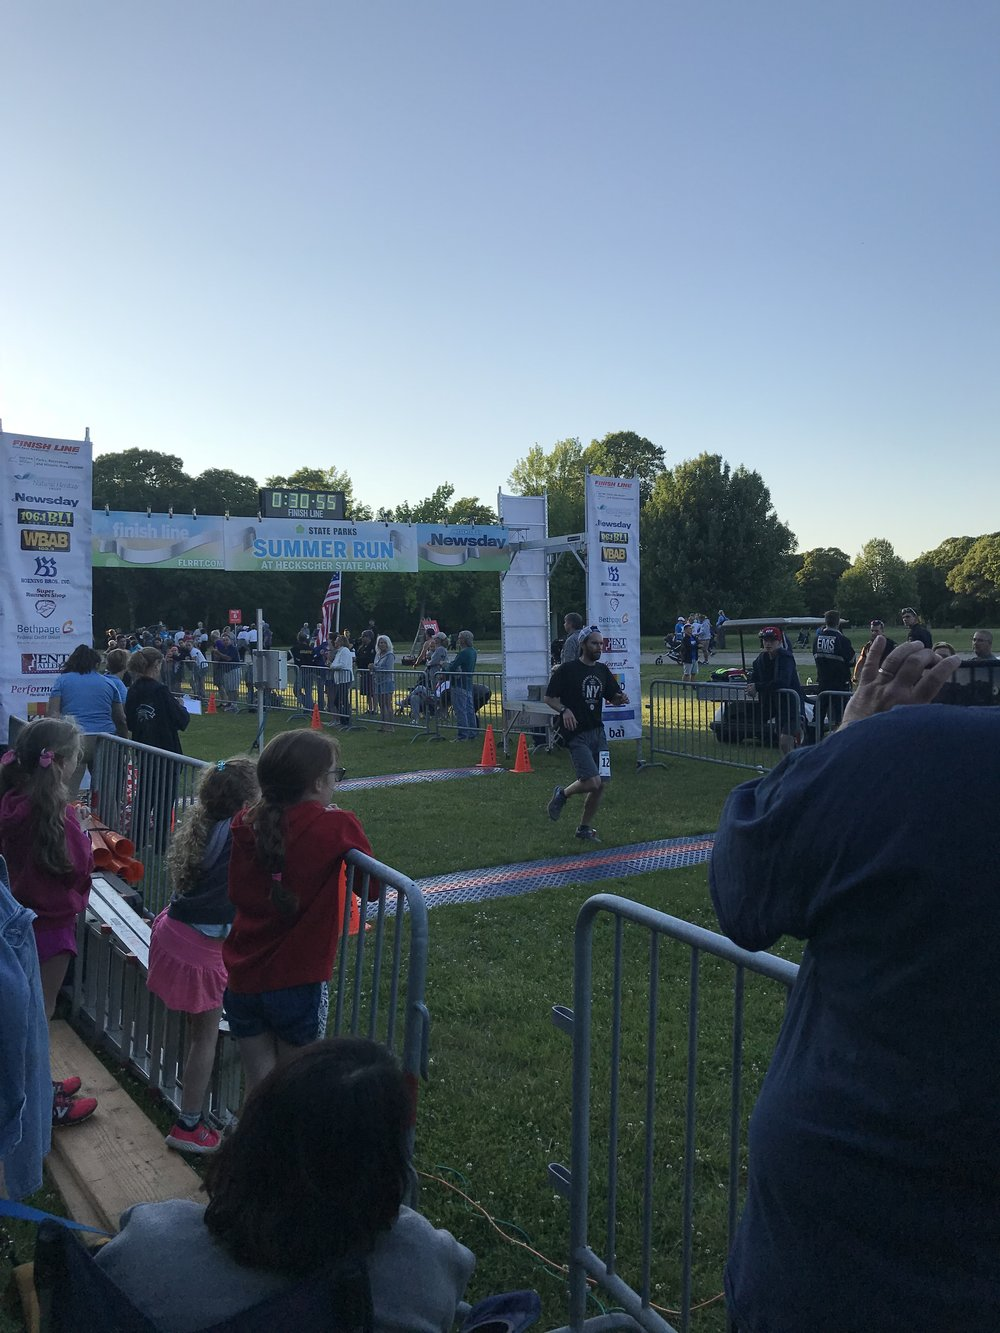 Glen beat his last 5 mile time by 1:15 to place 2nd in his age group. Here he is at the finish line.